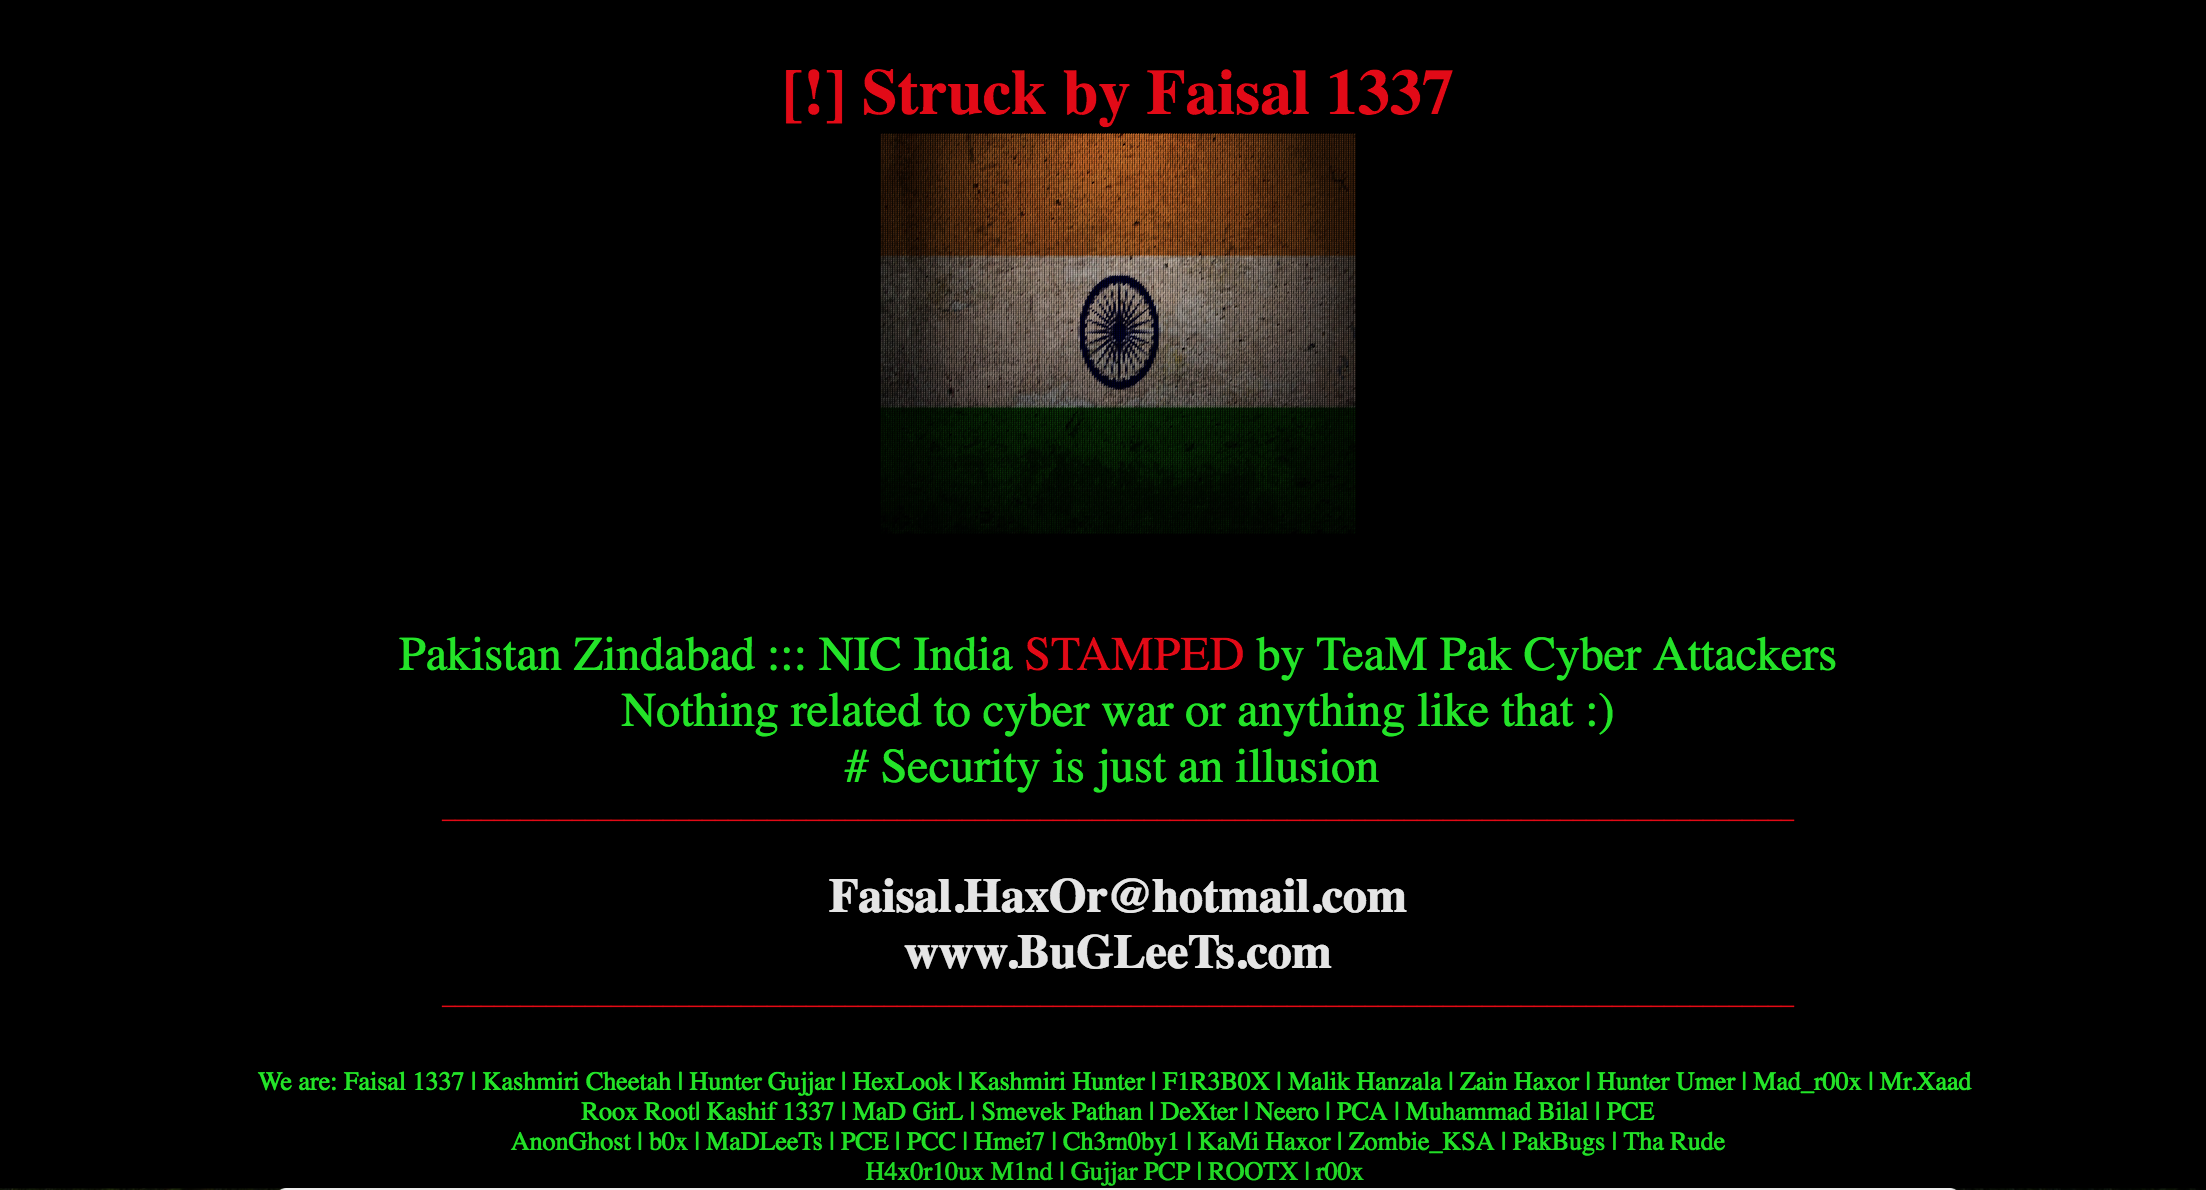 Over 40 Indian NIC/Government Websites Hacked & Defaced